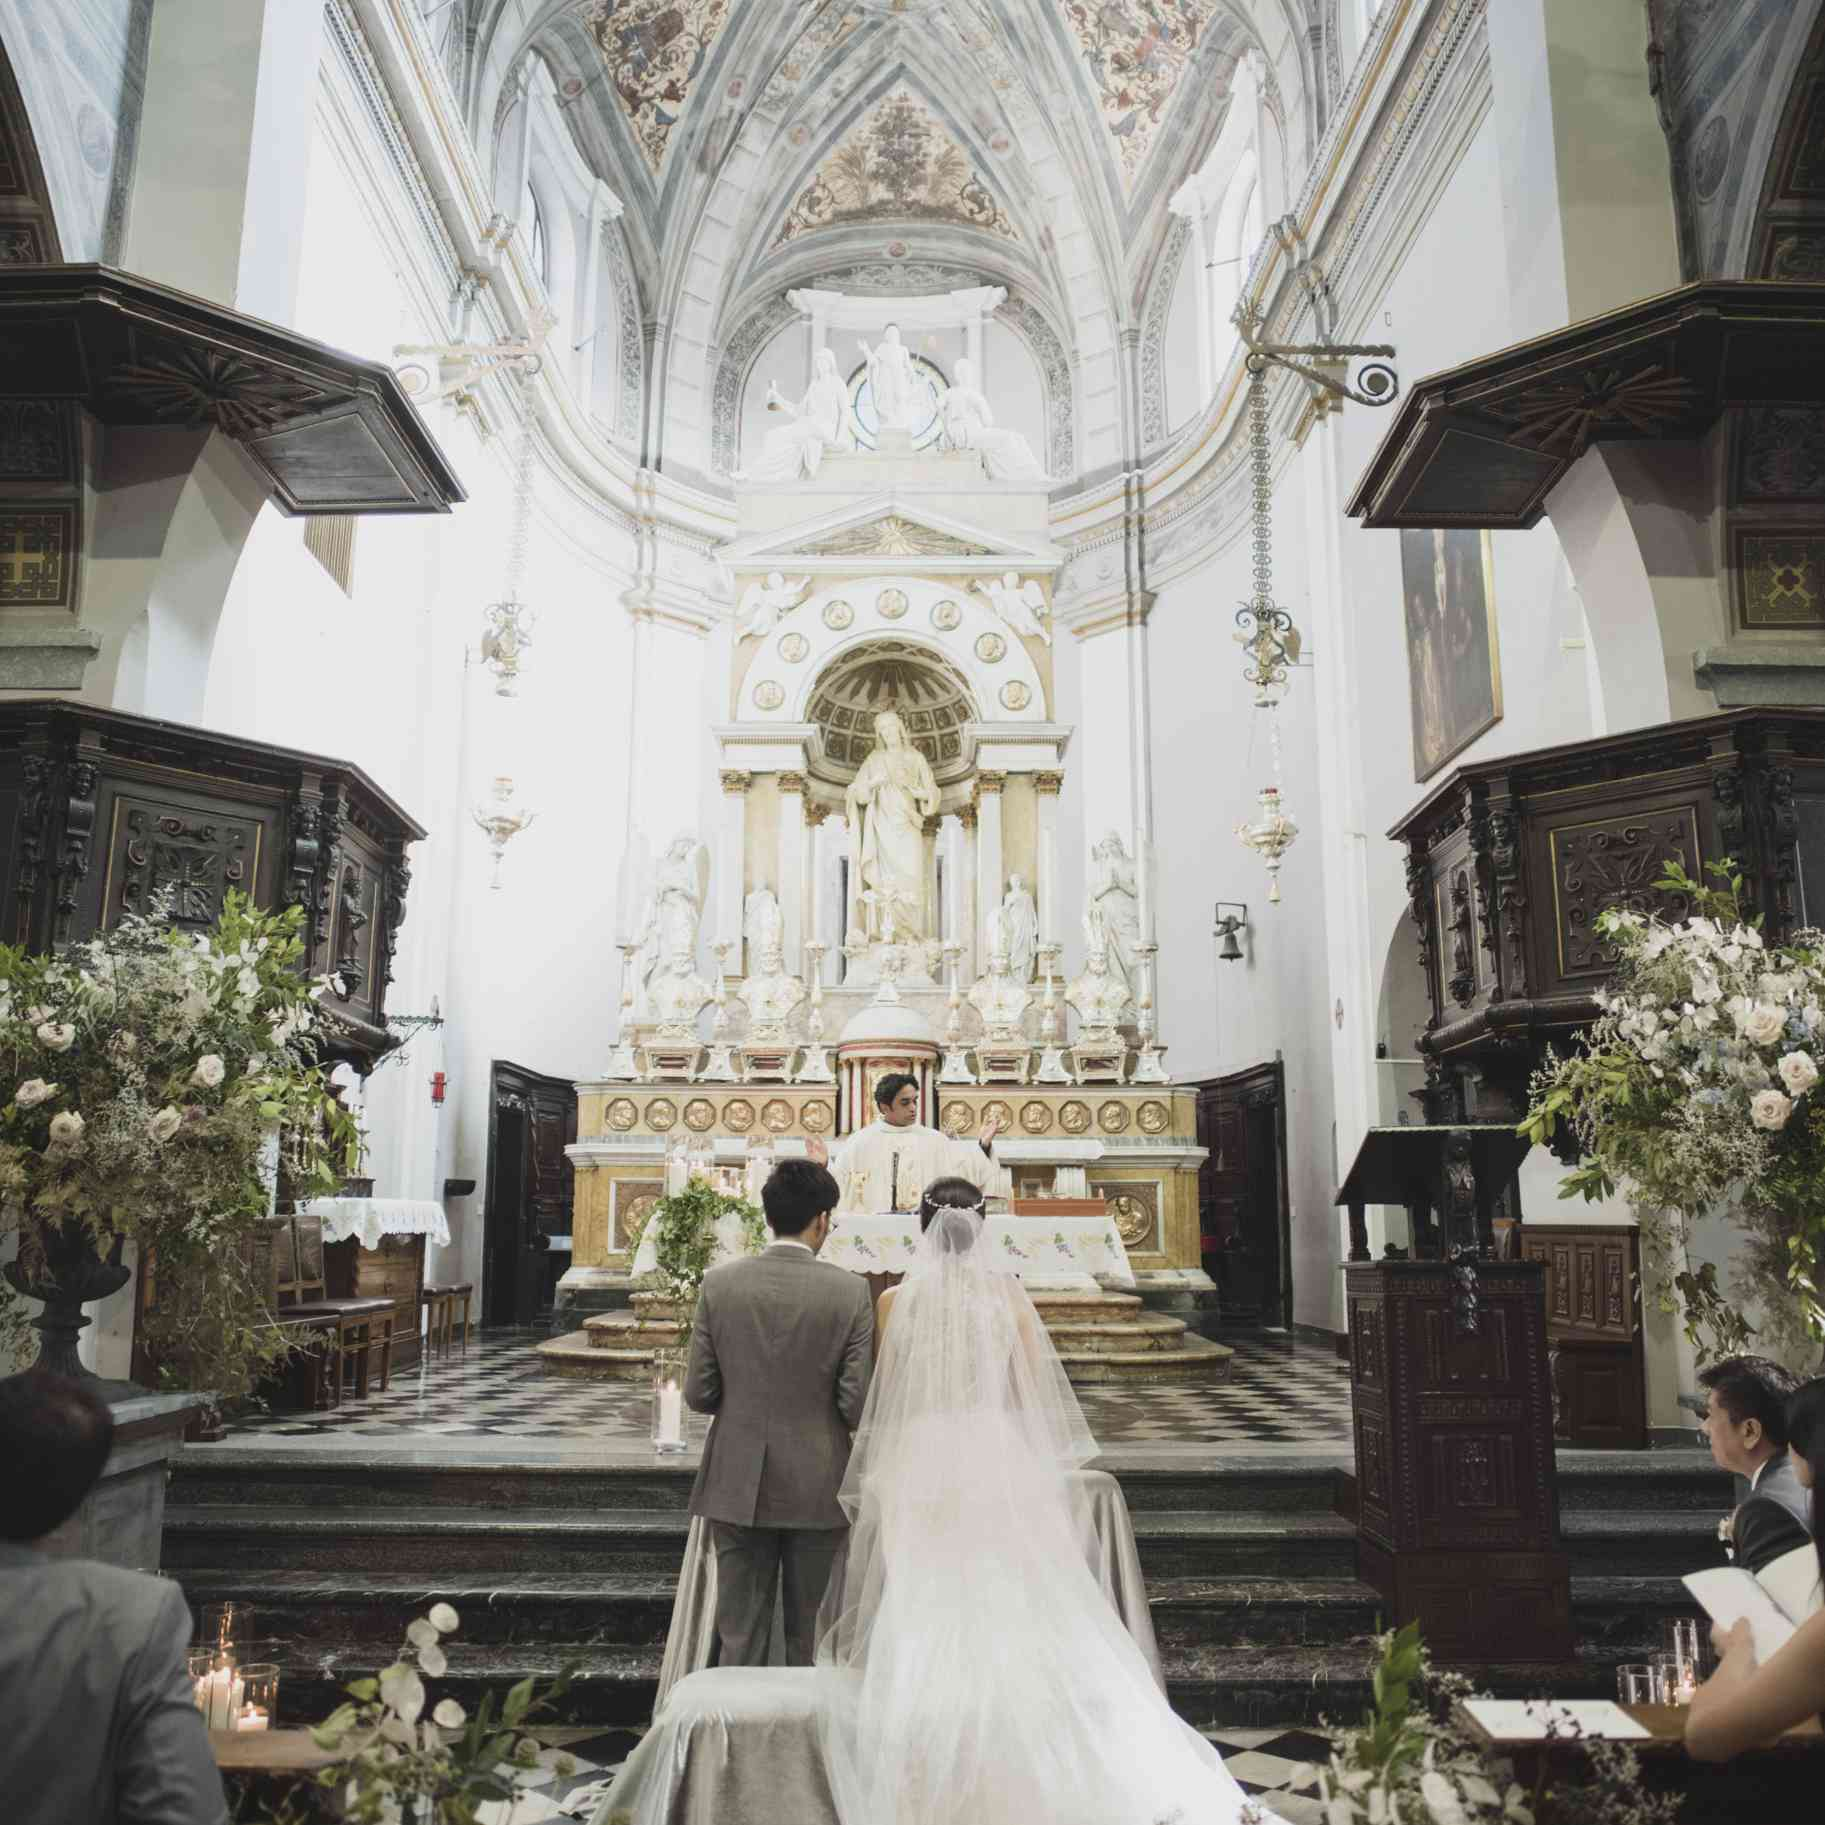 Newlyweds in Catholic Nuptial Mass in front of altar